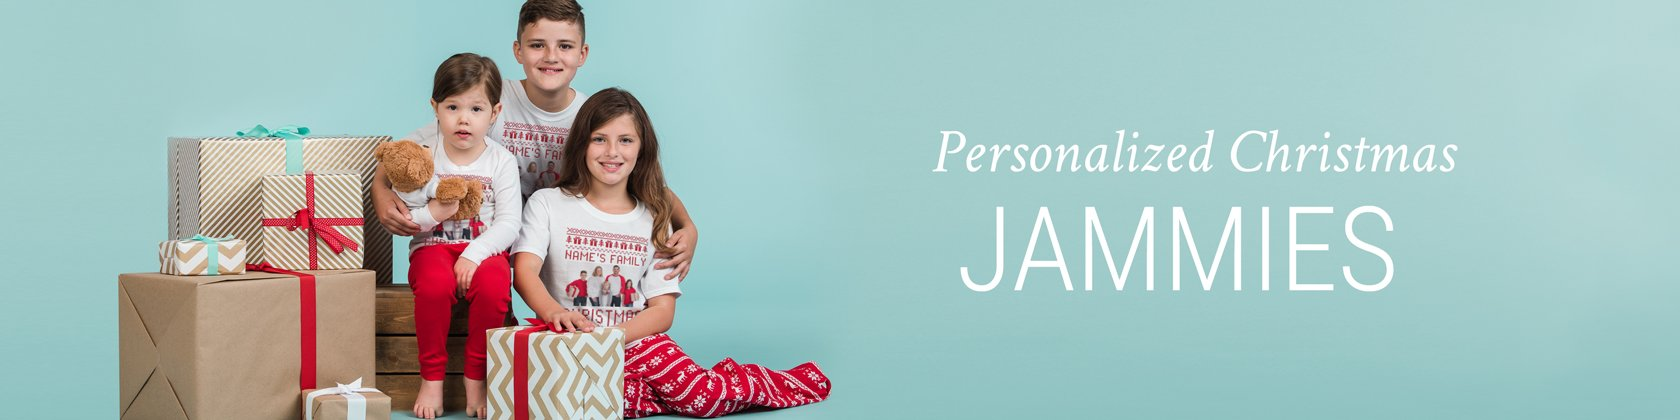 6a03af89ce Custom Christmas Pajamas for the whole Family